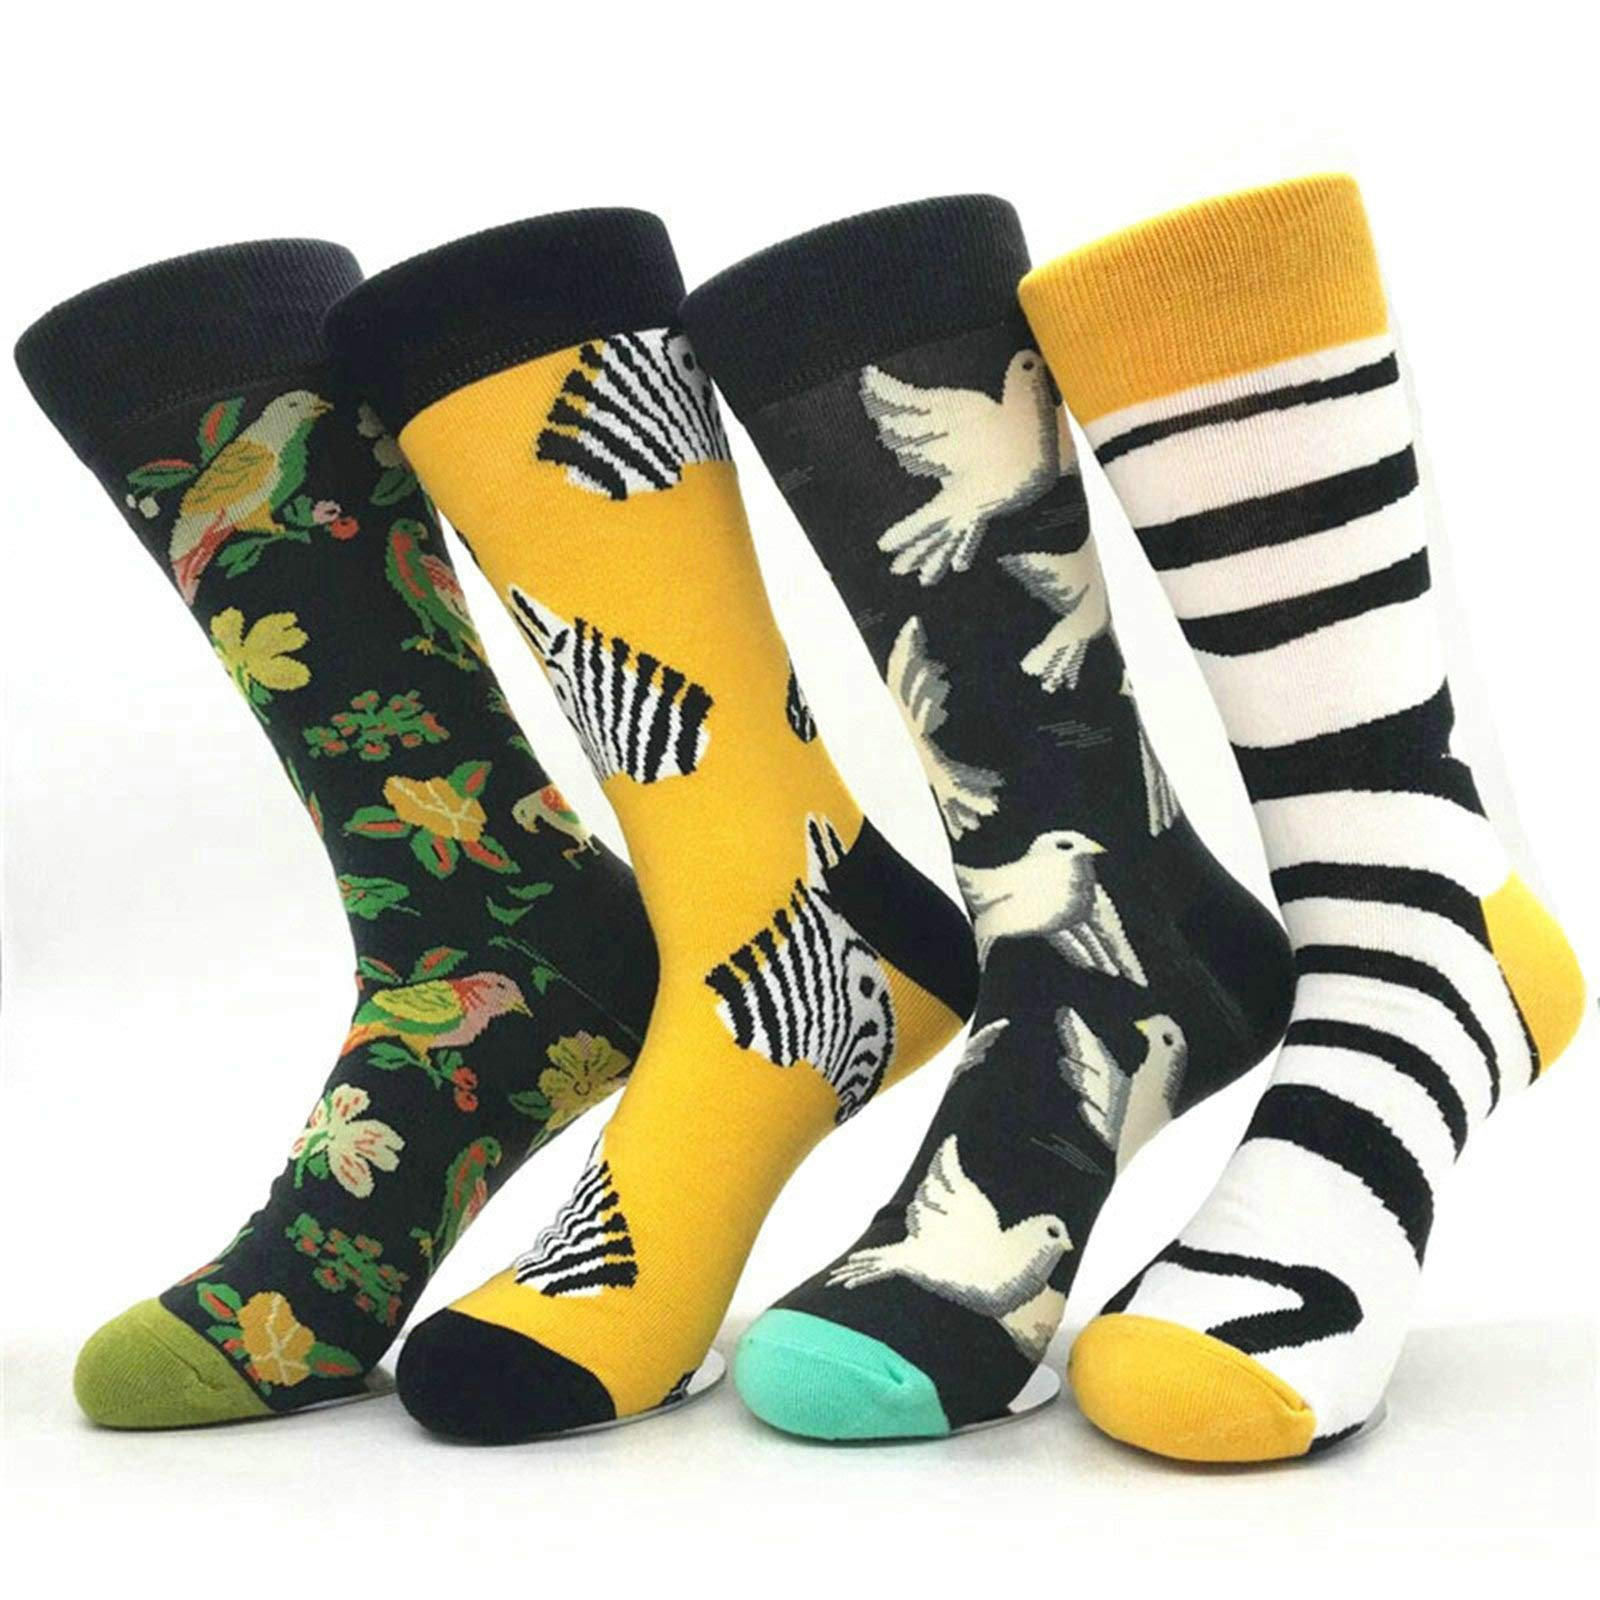 Aooaz Winter Warm Socks Personality Graffiti Contrast Series Ten Pairs of Random Mixed Colorful